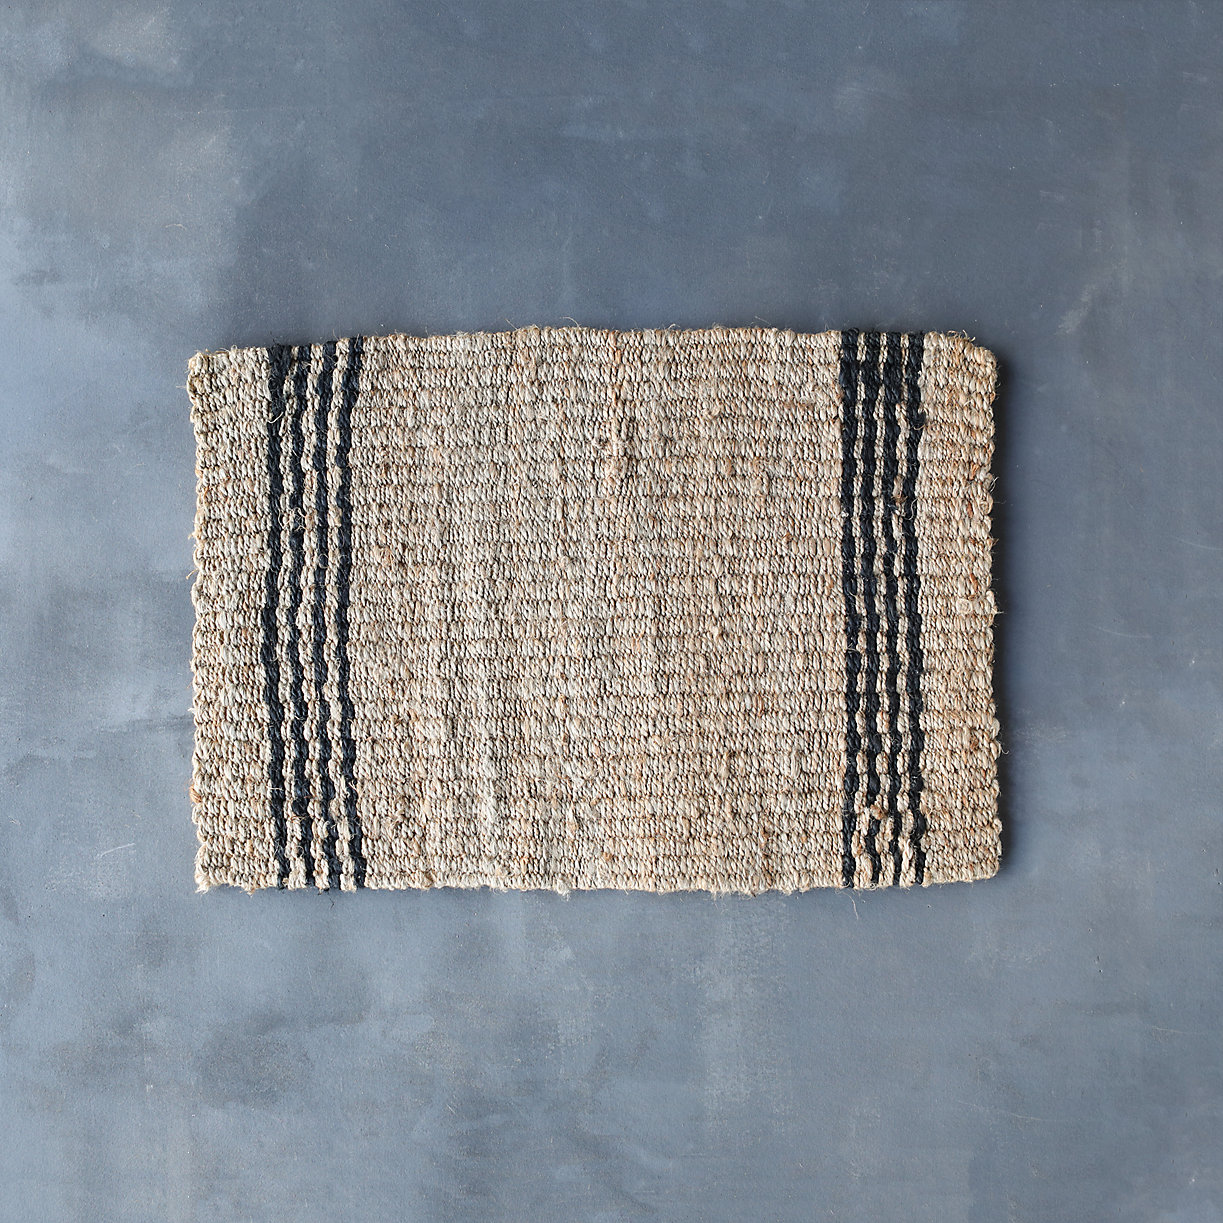 Shop for your porch - Simple touches like a garland, wreath, or new doormat are fun elements to add to your fall decor!